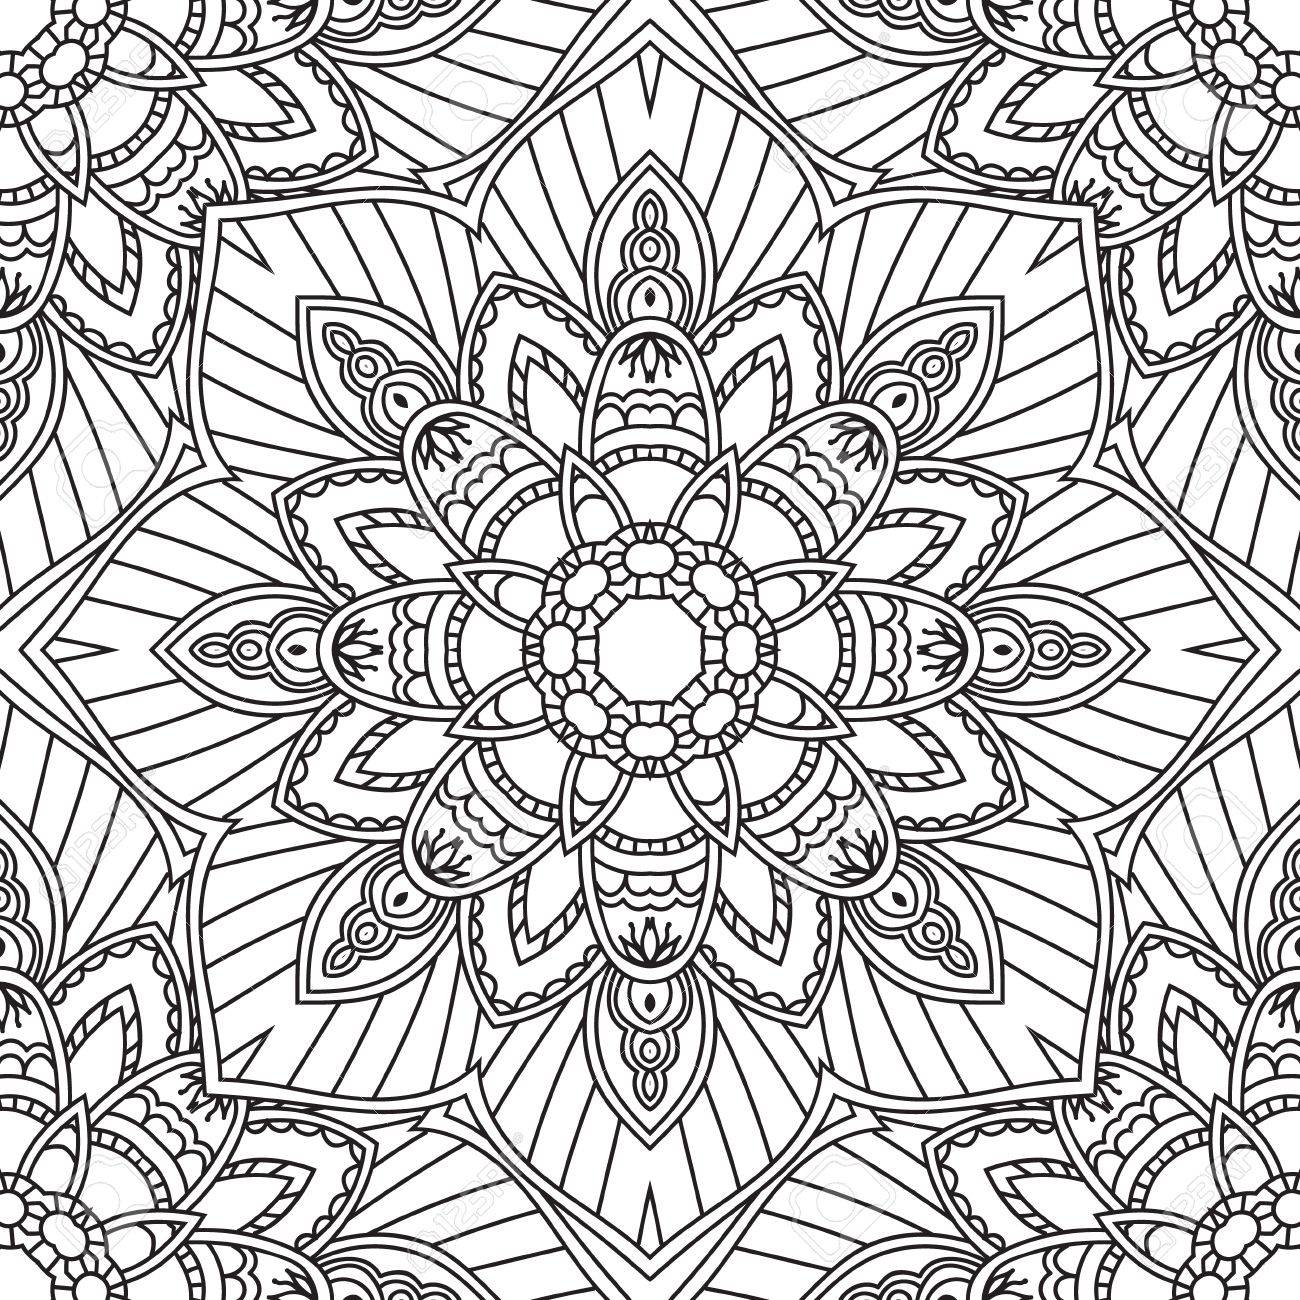 Coloring Pages For Adults Coloring Book Decorative Hand Drawn